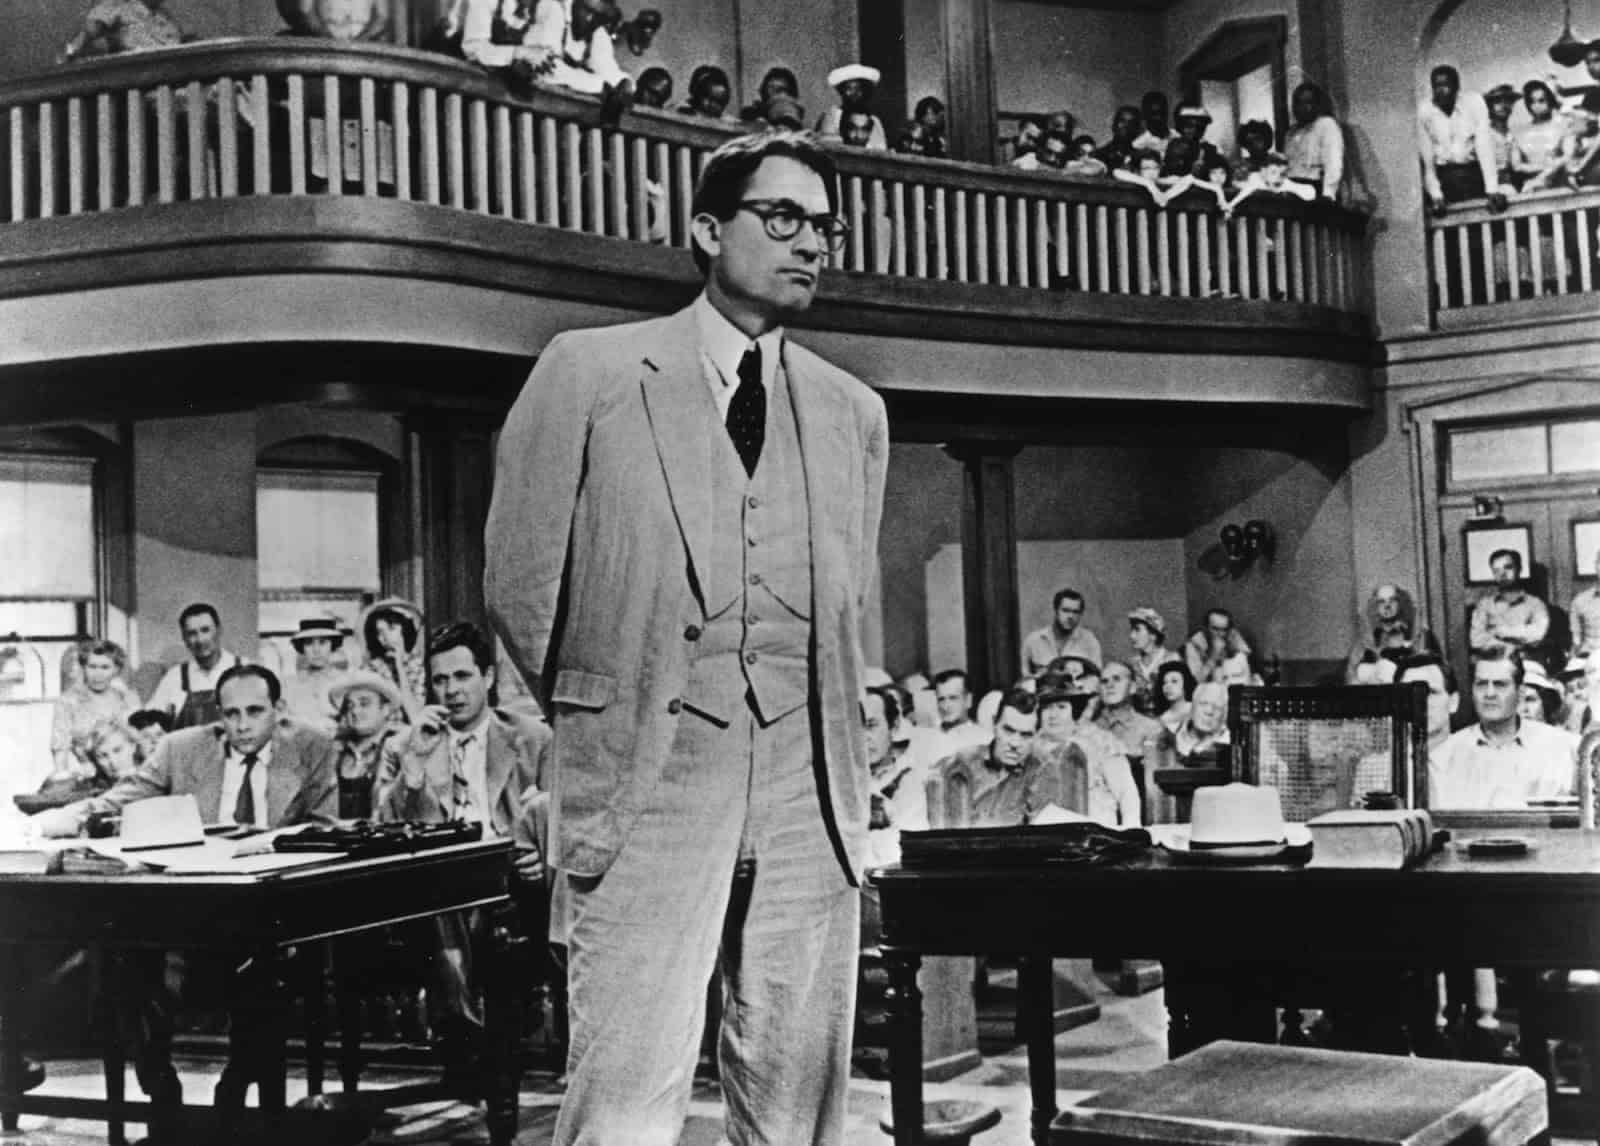 Atticus Finch in court in the film version of 'To Kill a Mockingbird'